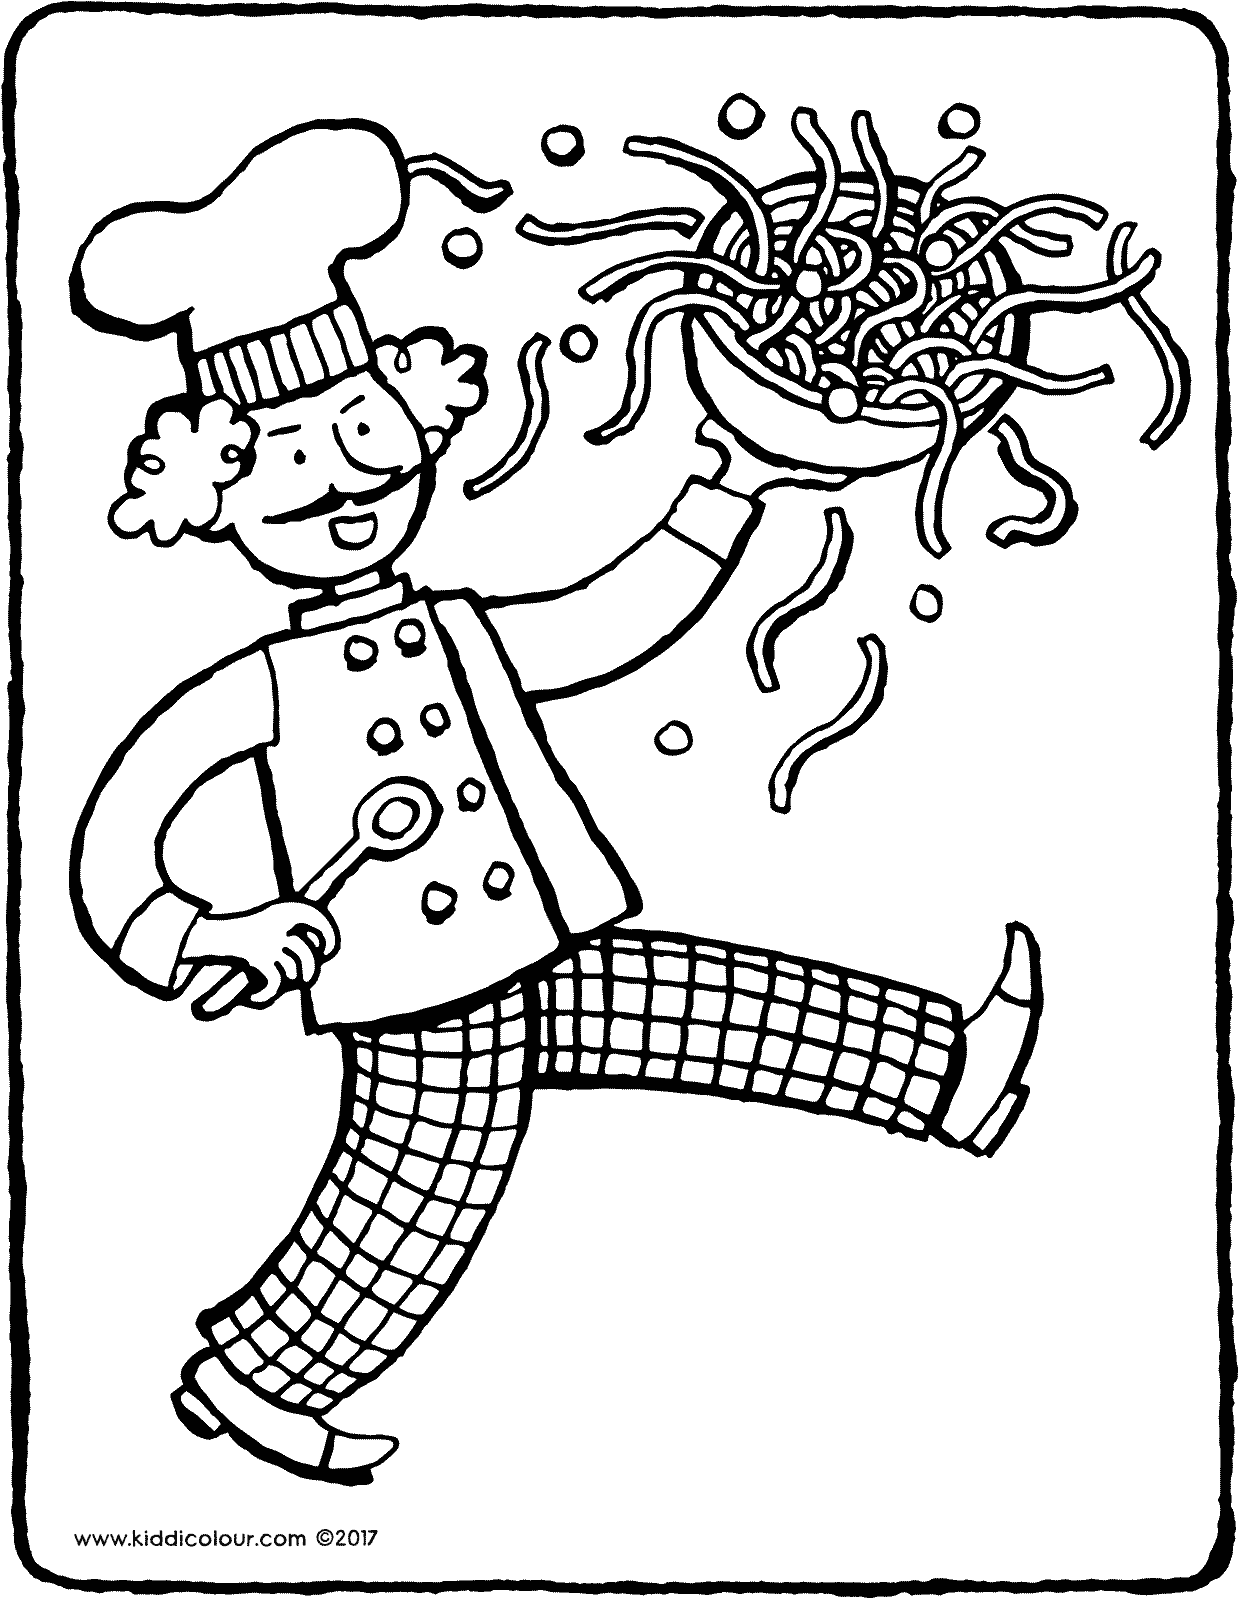 dancing chef colouring page drawing picture 01V